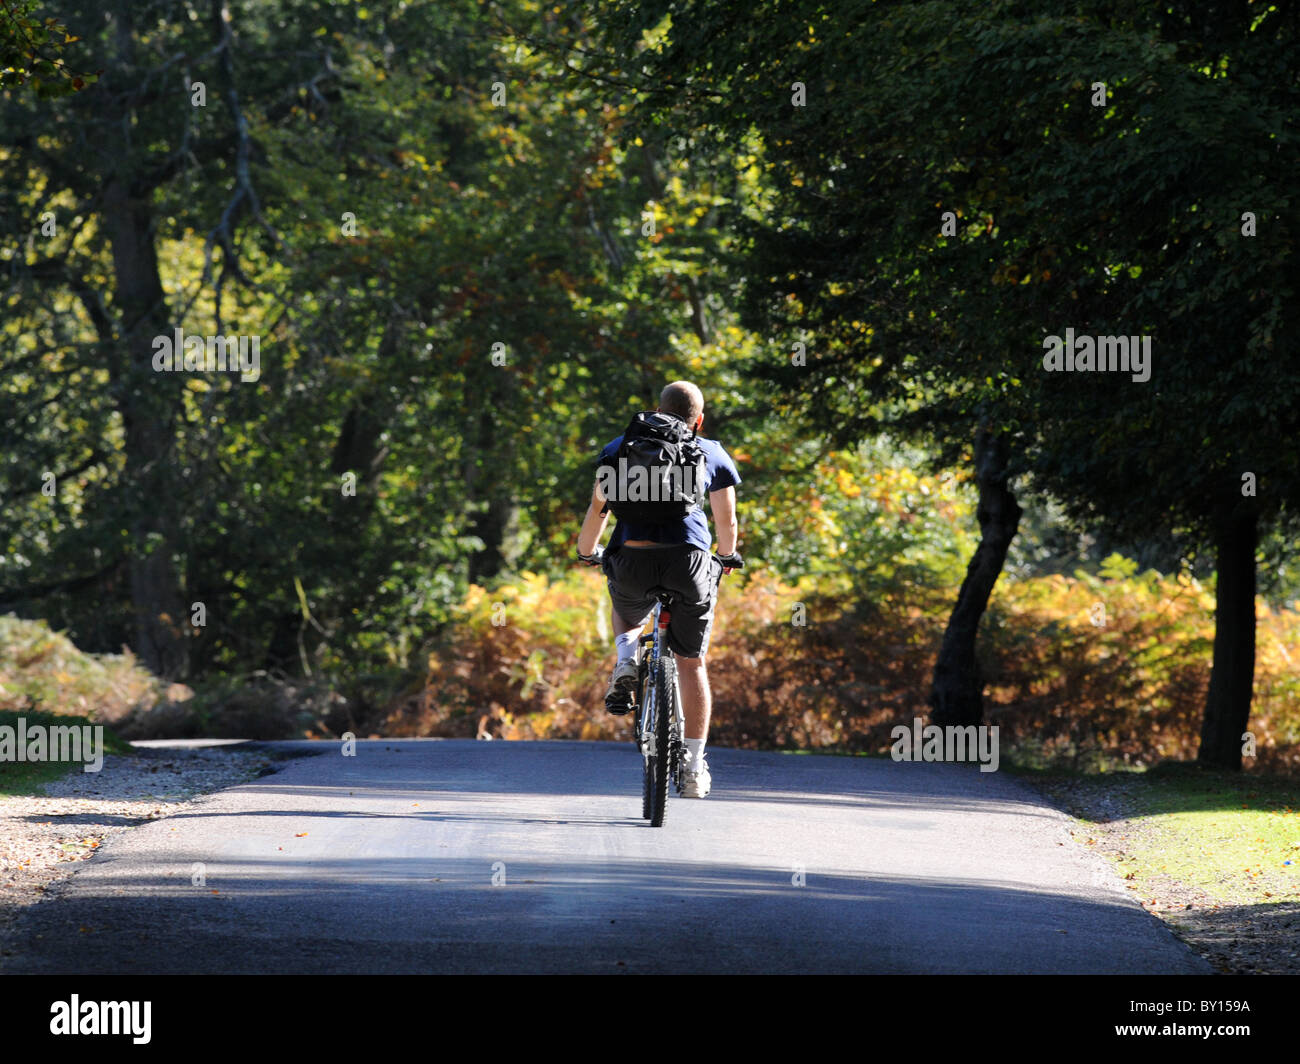 A cyclist cycling in beautiful countryside, wild and free with the open road ahead. - Stock Image